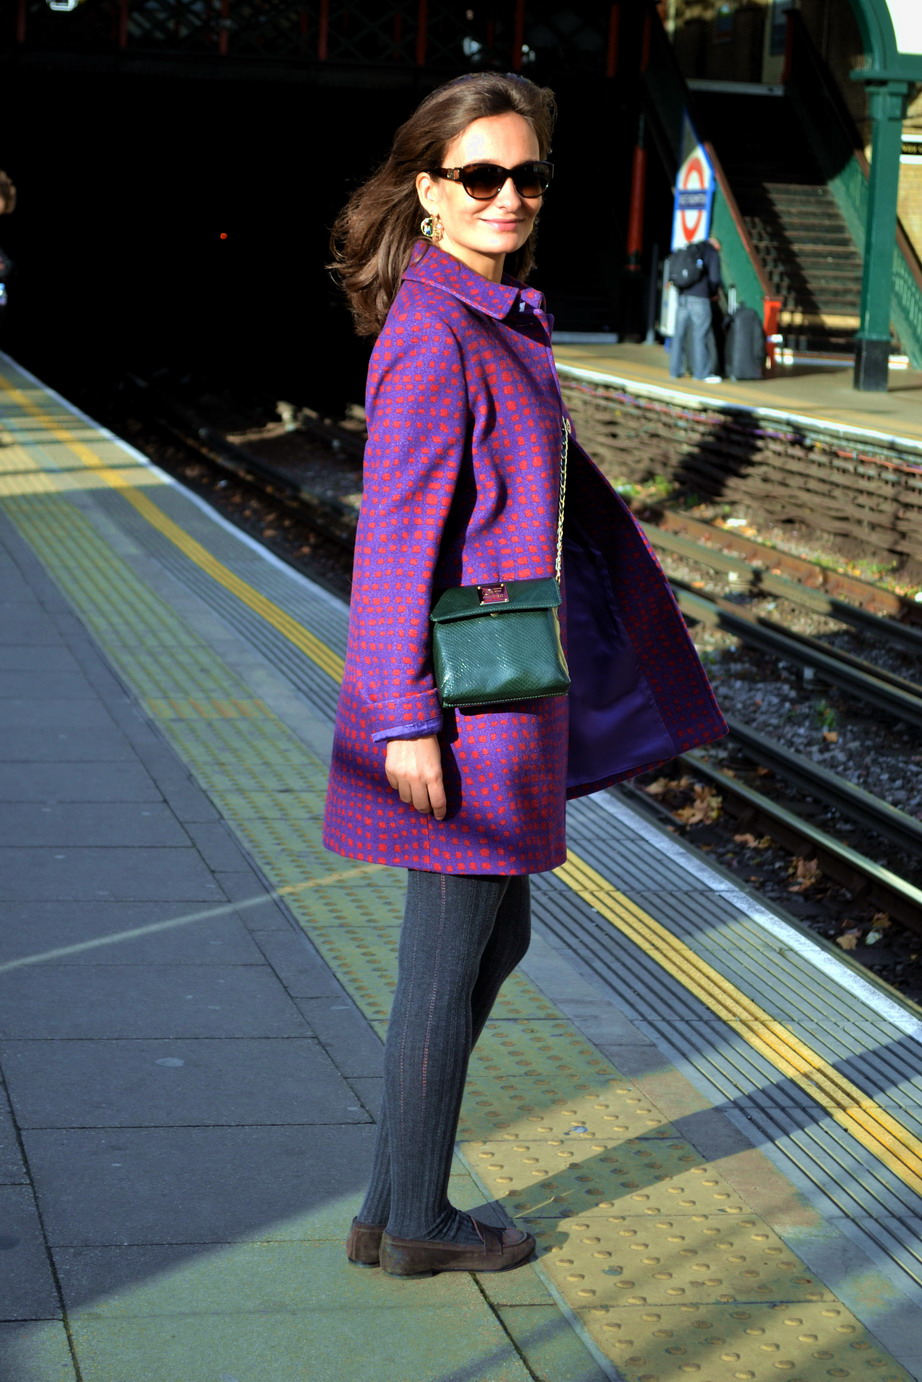 Coat from Max & Co. Grey wool tights from Kunert. Shoes by Attilio Giusti Leombruni.